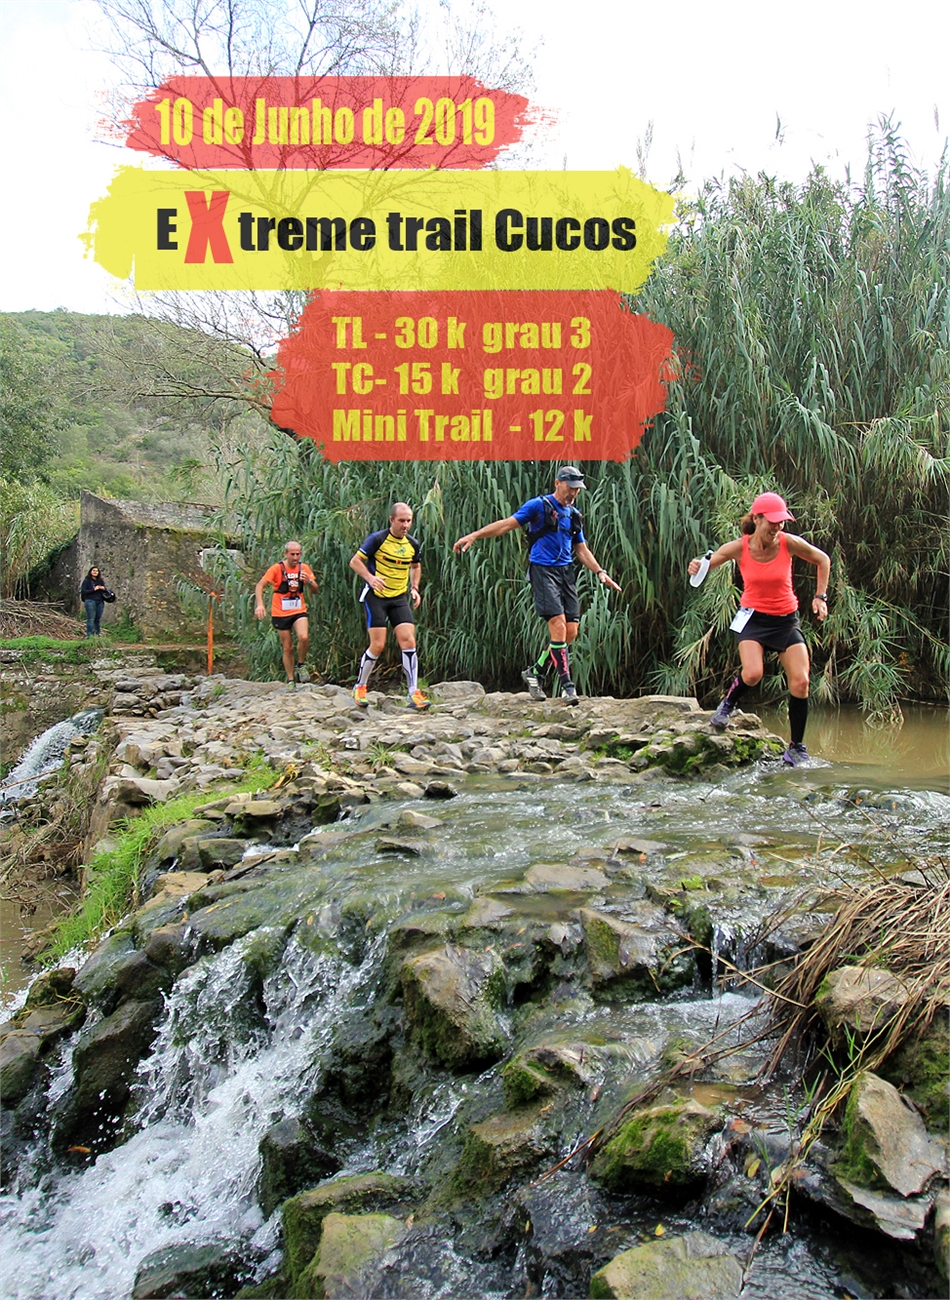 EXtreme Trail Cucos  - Eventos - TURRESEVENTS